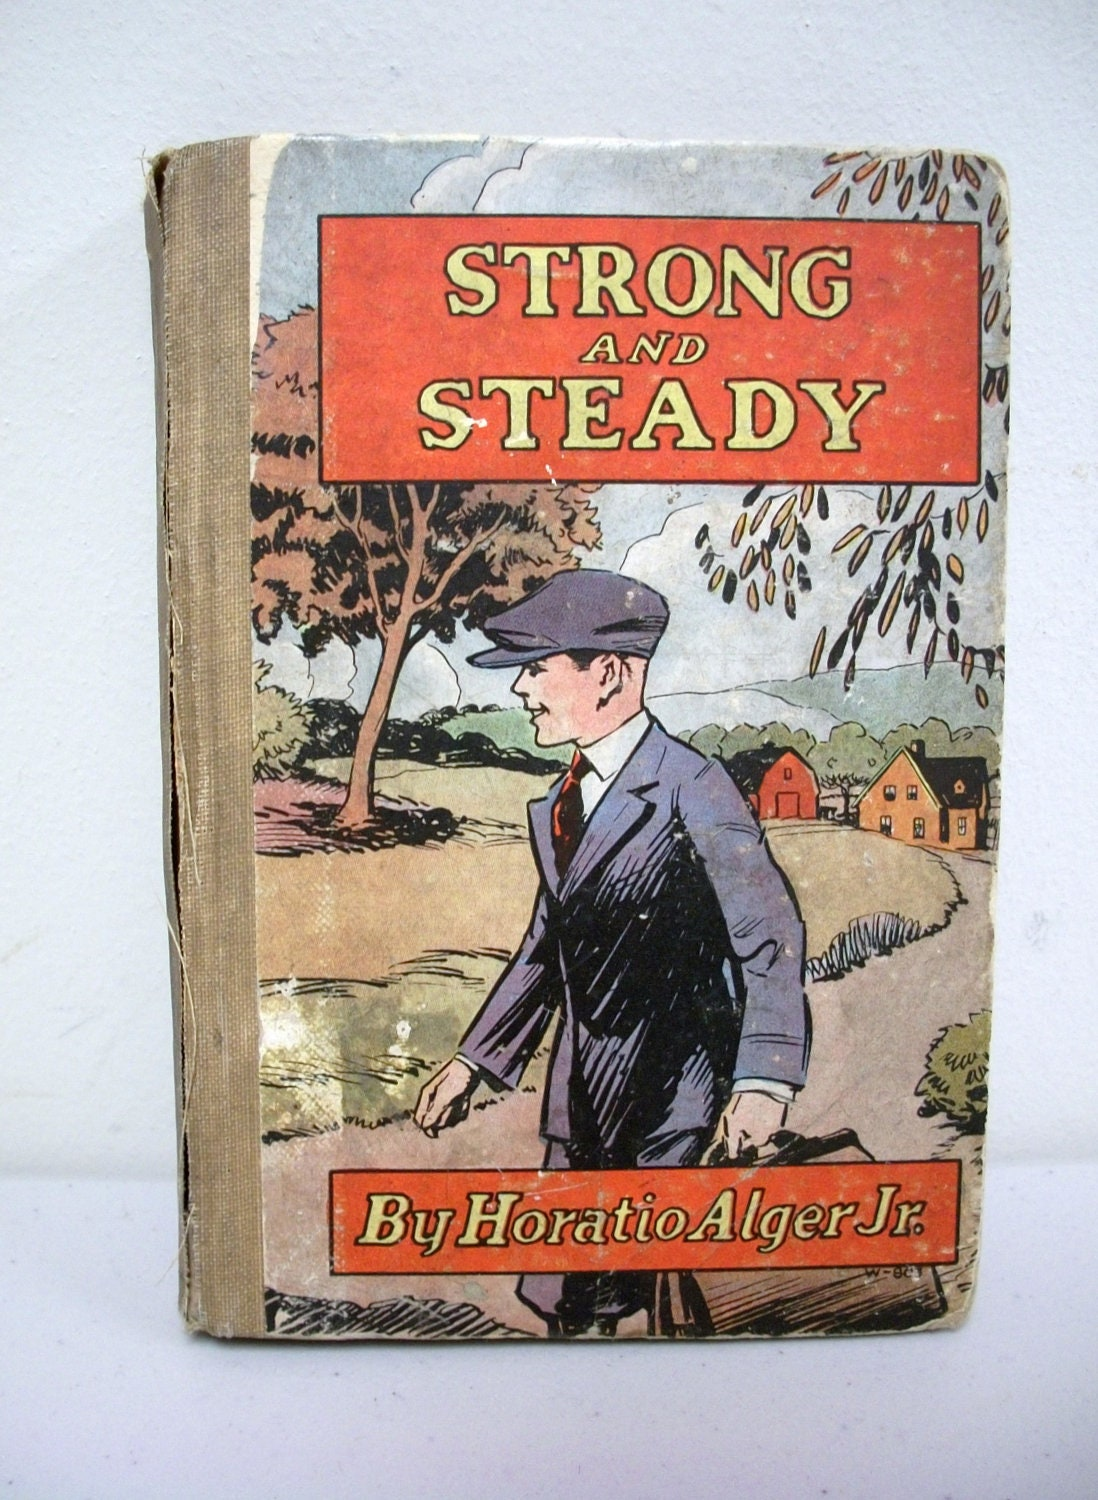 STRONG AND STEADY. Horatio Alger Jr.